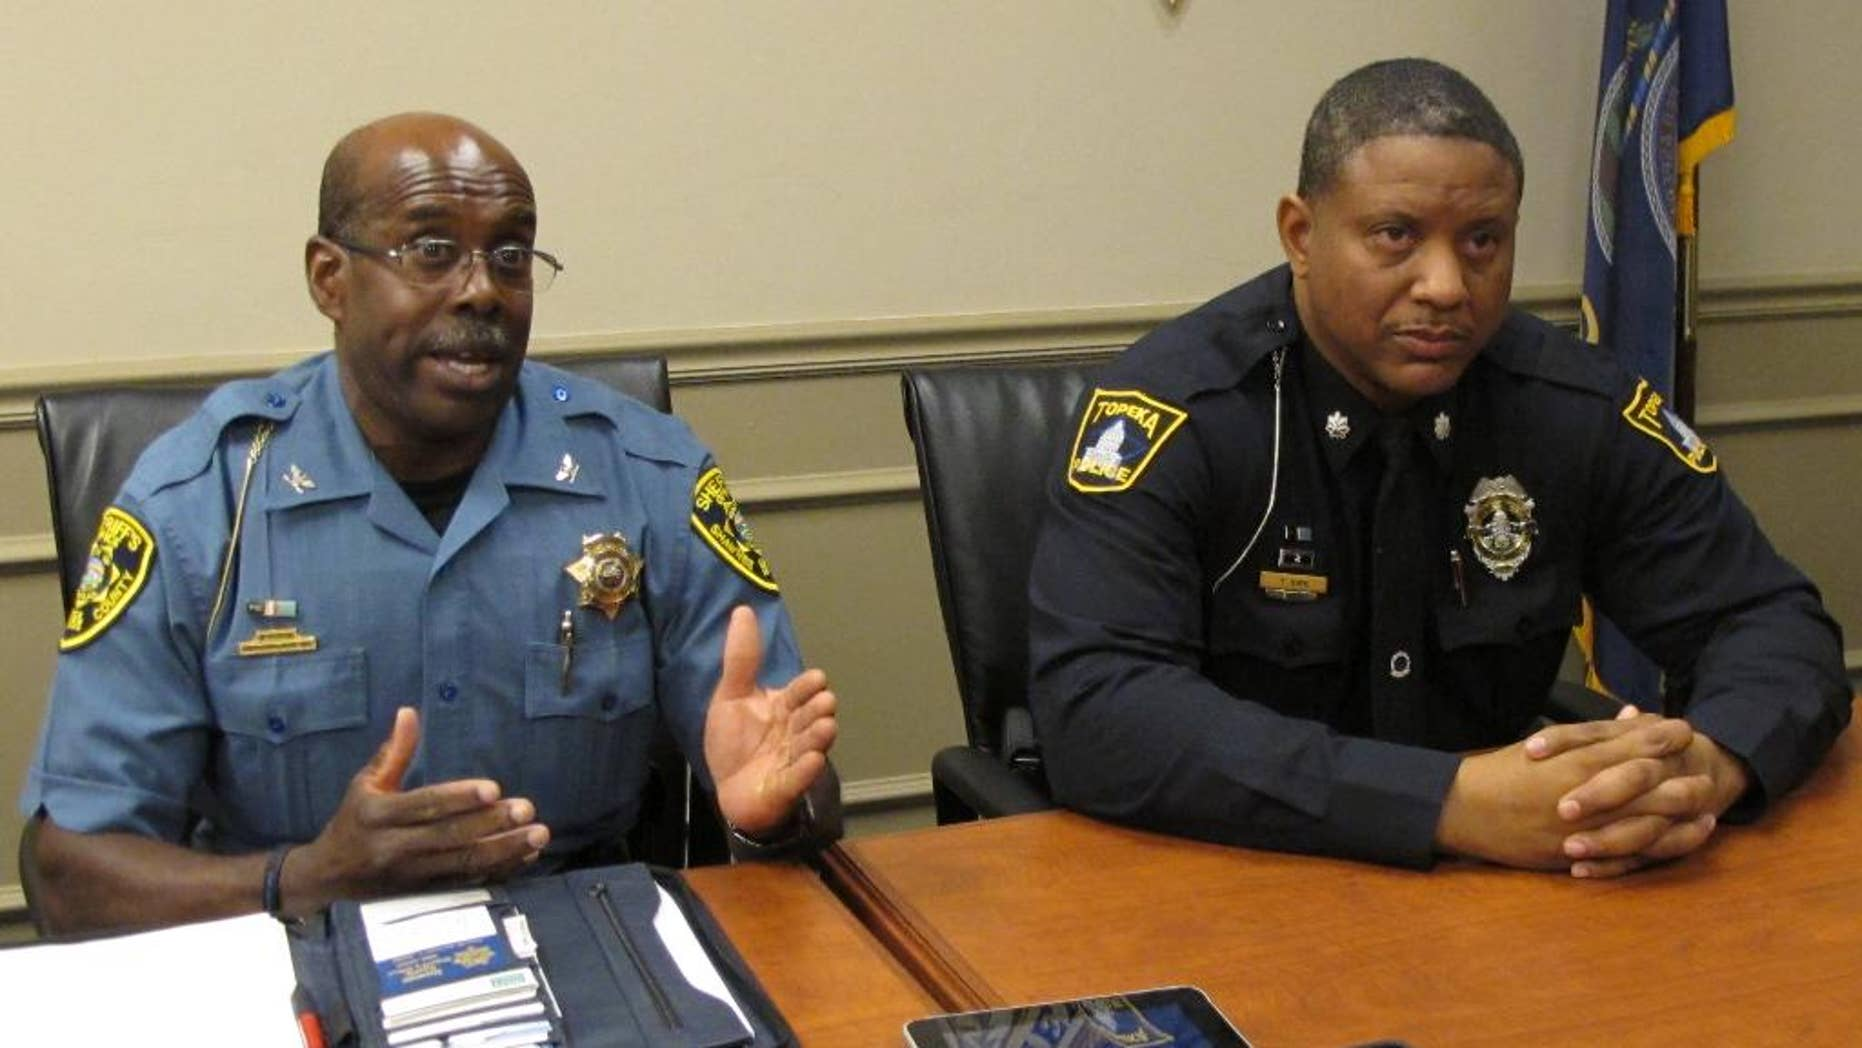 Shawnee County, Kan., Sheriff Herman Jones, left, answers questions from reporters about the shooting death of a Topeka police officer, as interim Police Chief Tony Kirk, right, watches, Sunday, Sept. 7, 2014, in Topeka, Kan. The officer, Cpl. Jason Harwood, 40 was shot during a car stop in east Topeka. (AP Photo/John Hanna)